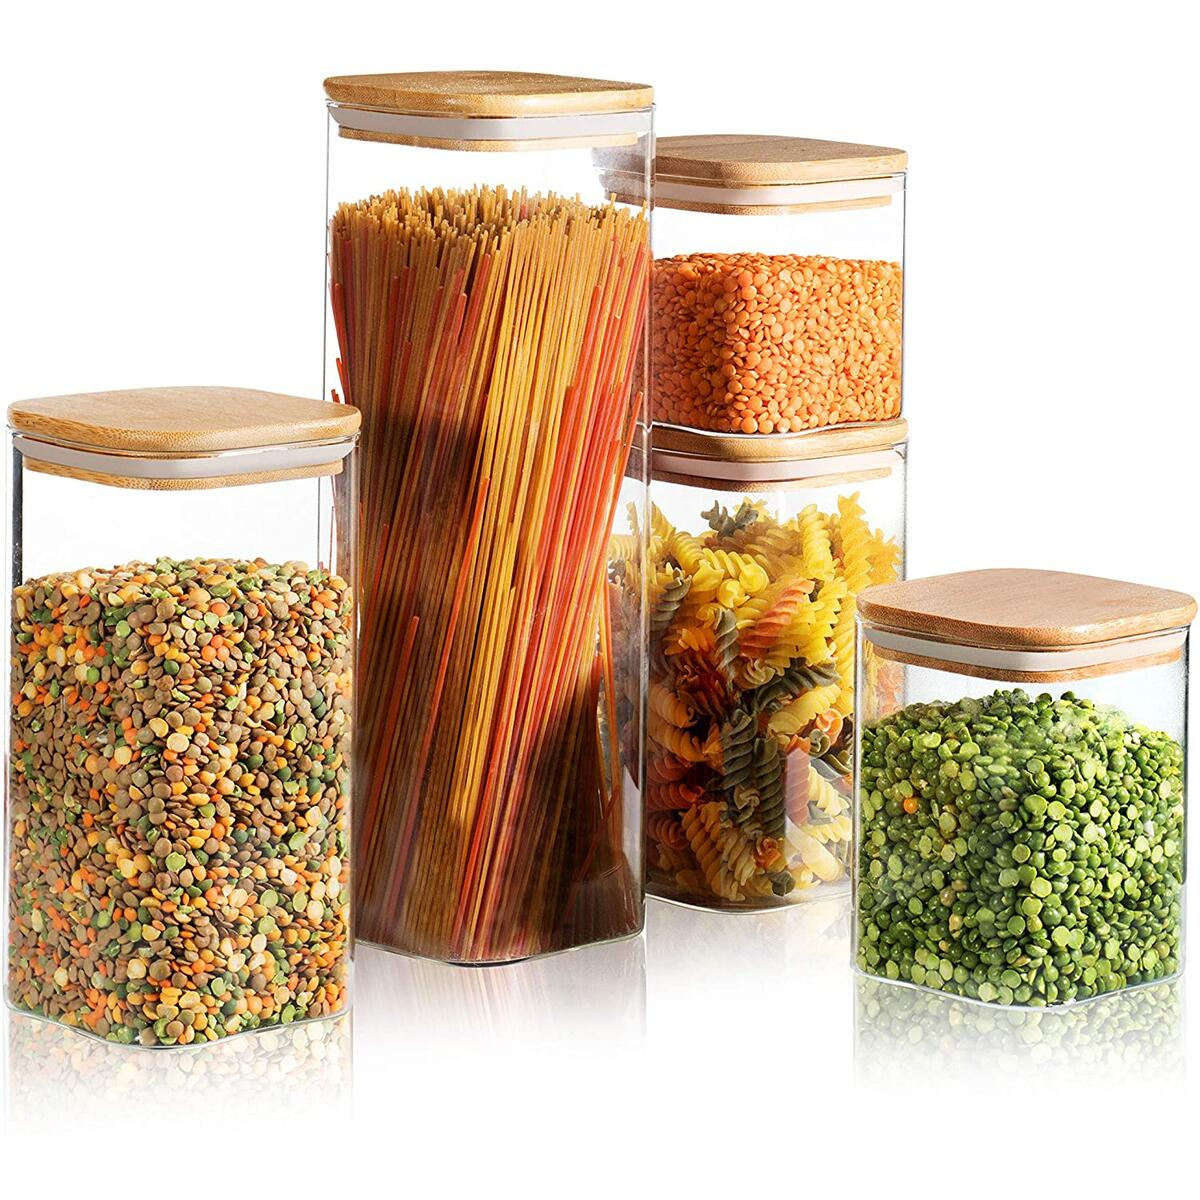 Set of 5 Square Canisters, Glass Kitchen Canister with Airtight Bamboo Lid, Glass Storage Jars for Kitchen, Bathroom and Pantry Organization Ideal for Flour, Sugar, Coffee, Candy, Snack and More (5